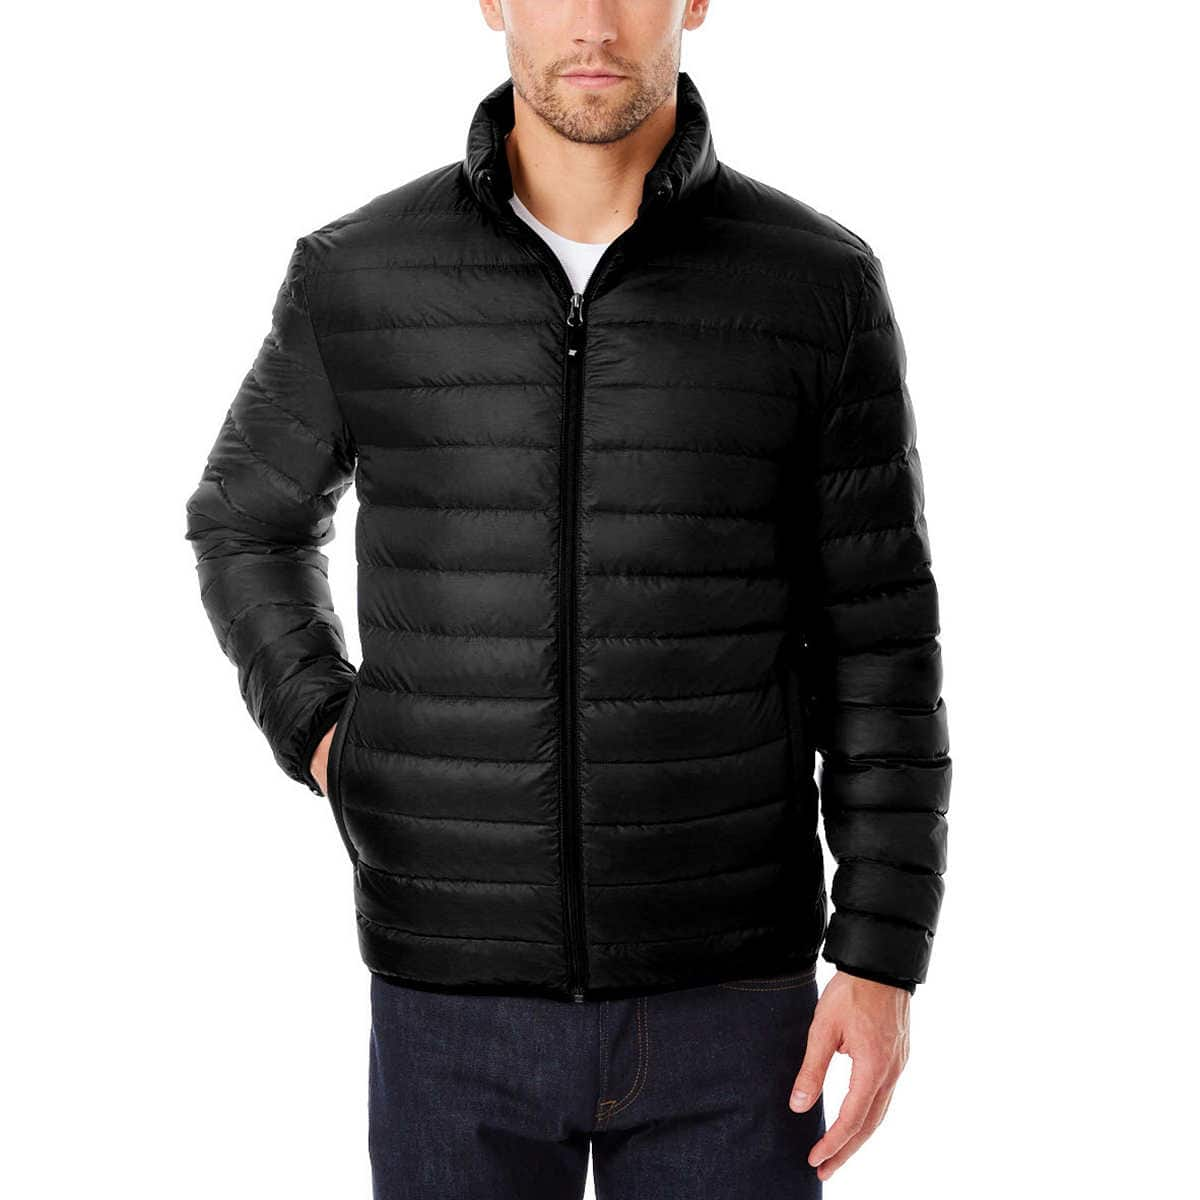 5a0771573a6fe 32 Degrees Men s Packable Down Jacket  19.99 at Costco.com (Online only)